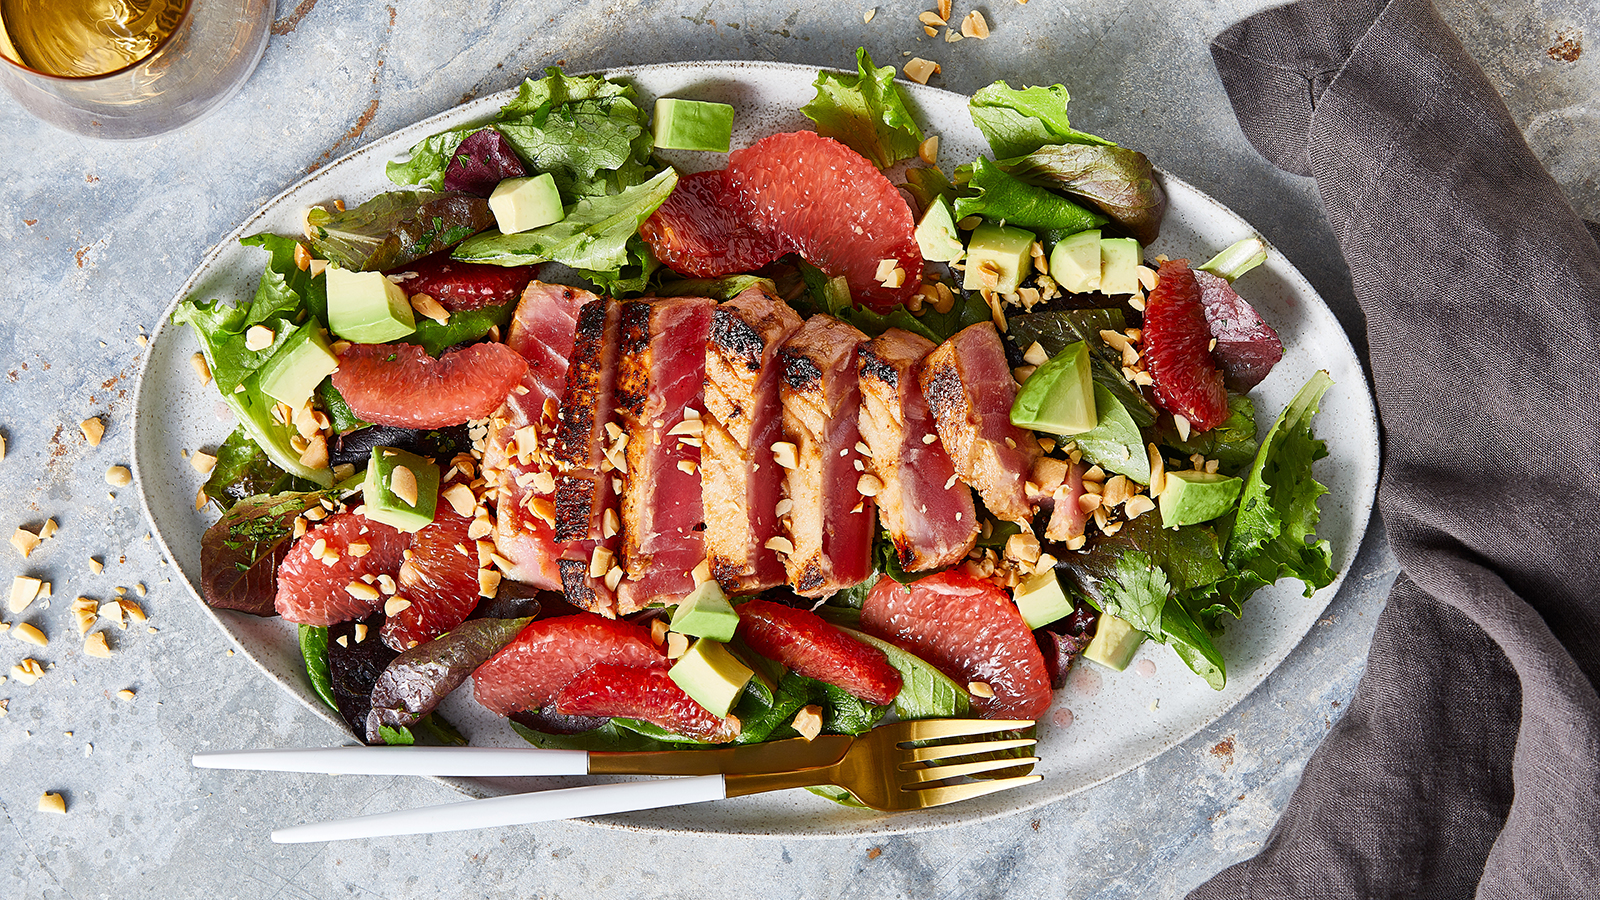 Seared Tuna Salad with Blood Orange Vinaigrette